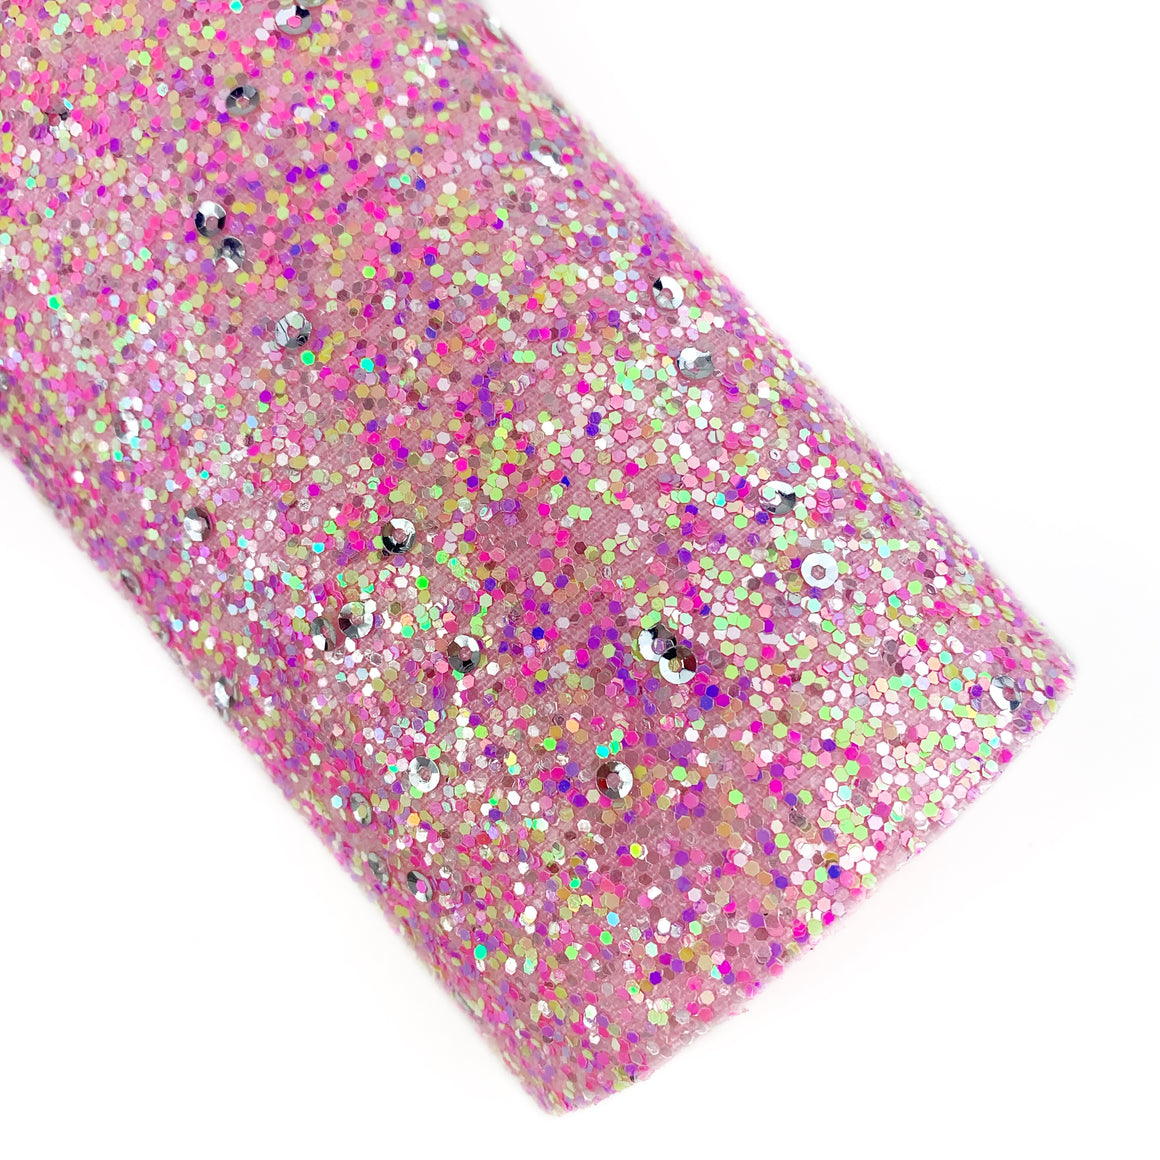 Tropical Popsicle Sequins Chunky Glitter